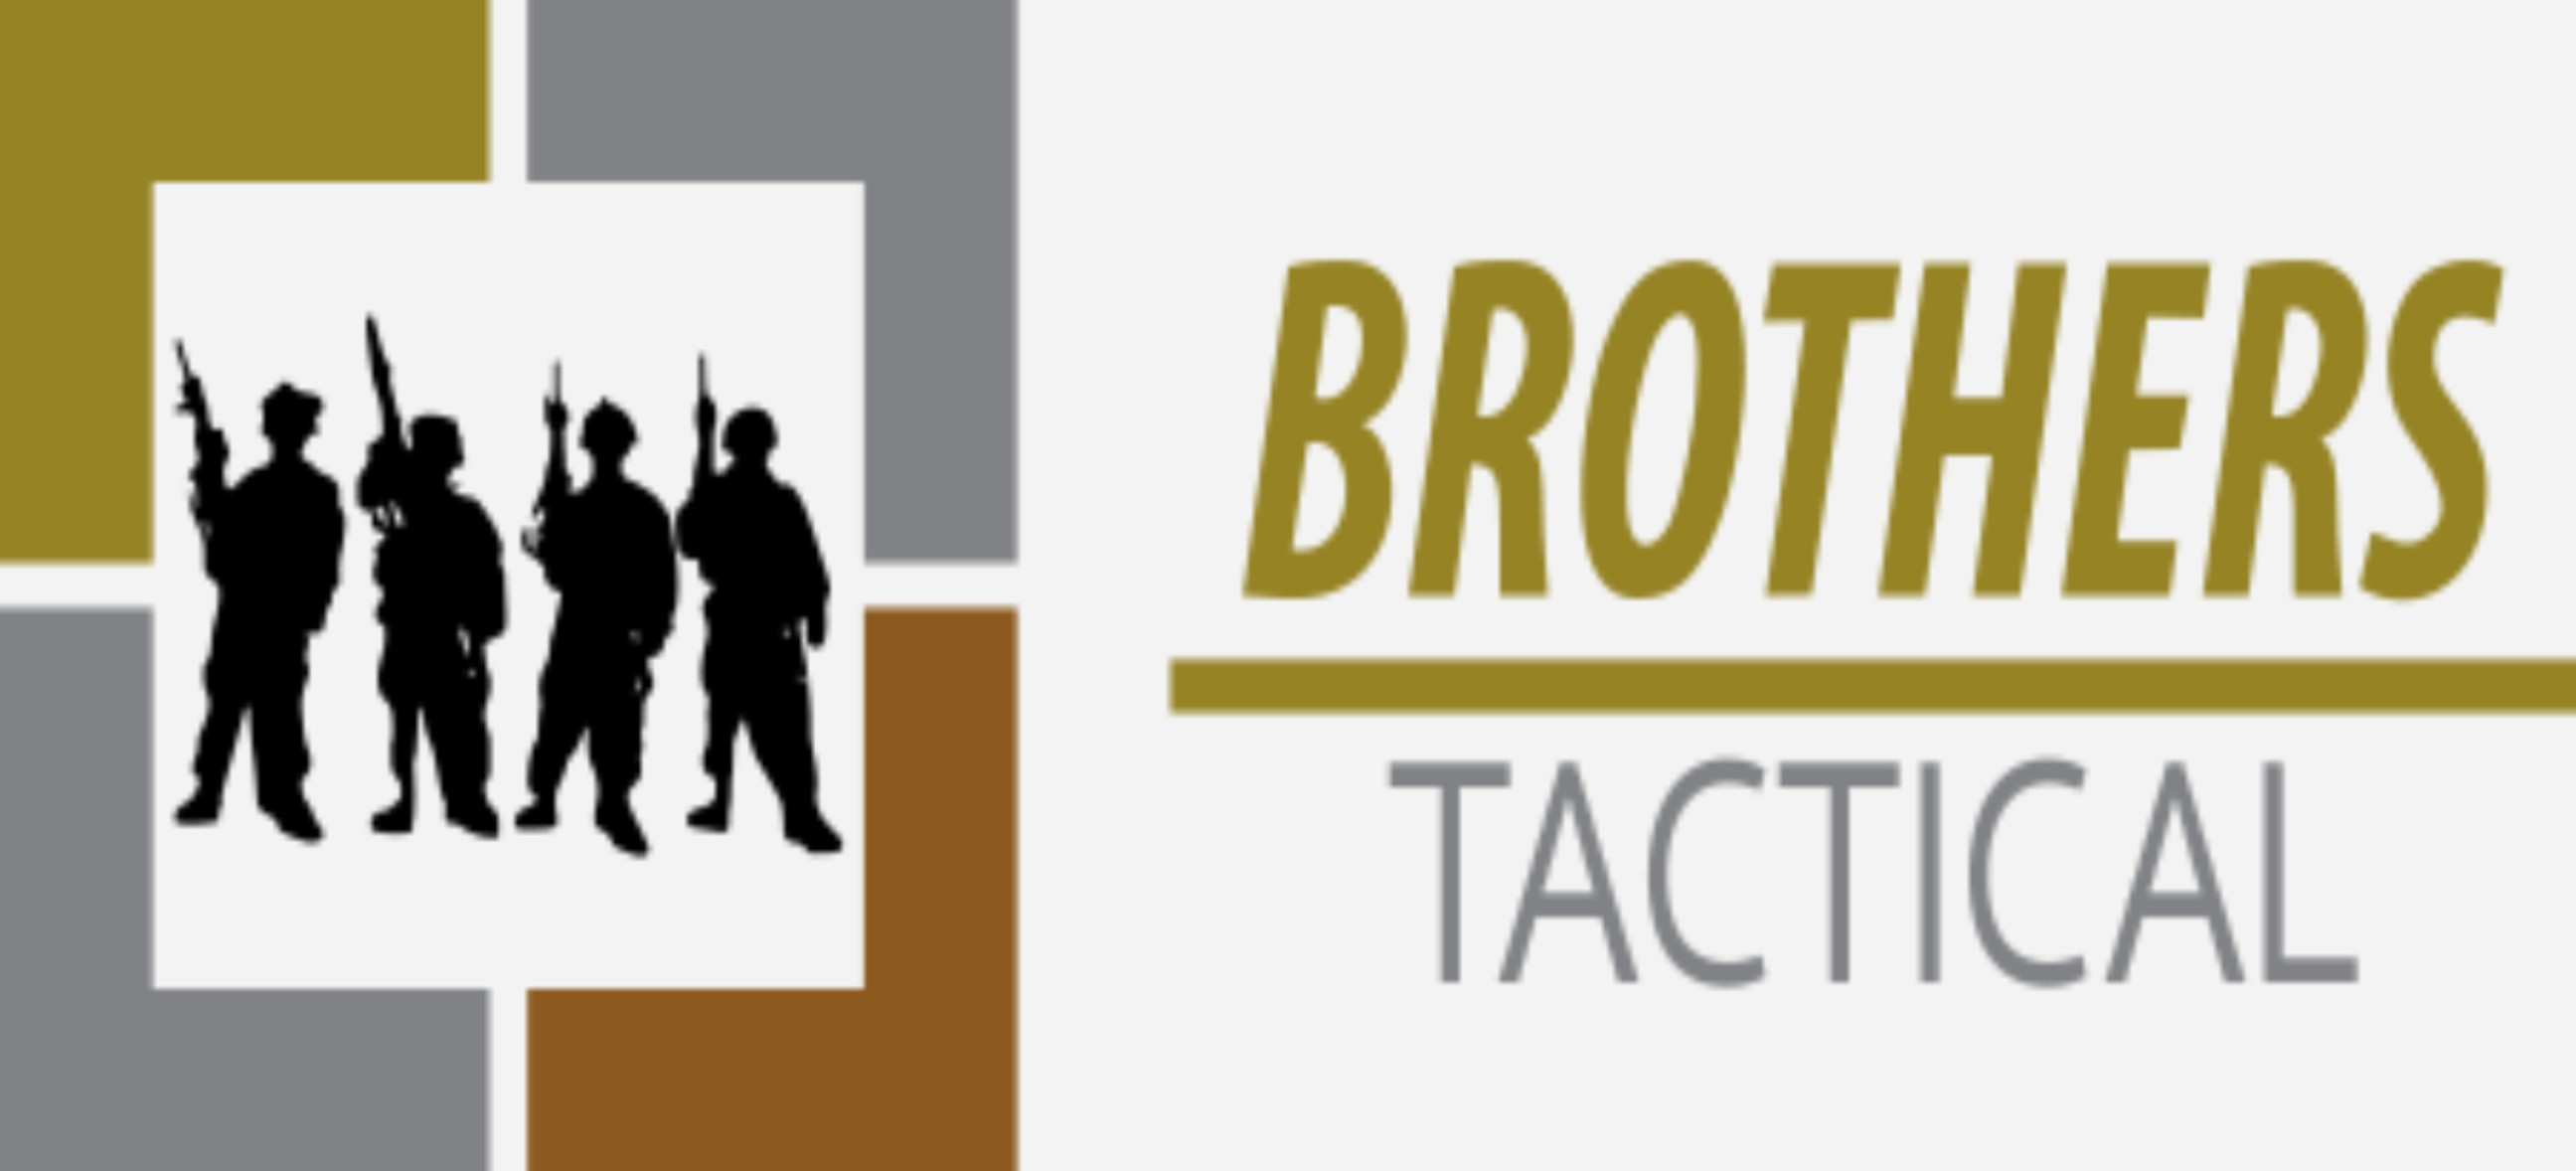 Brotactical